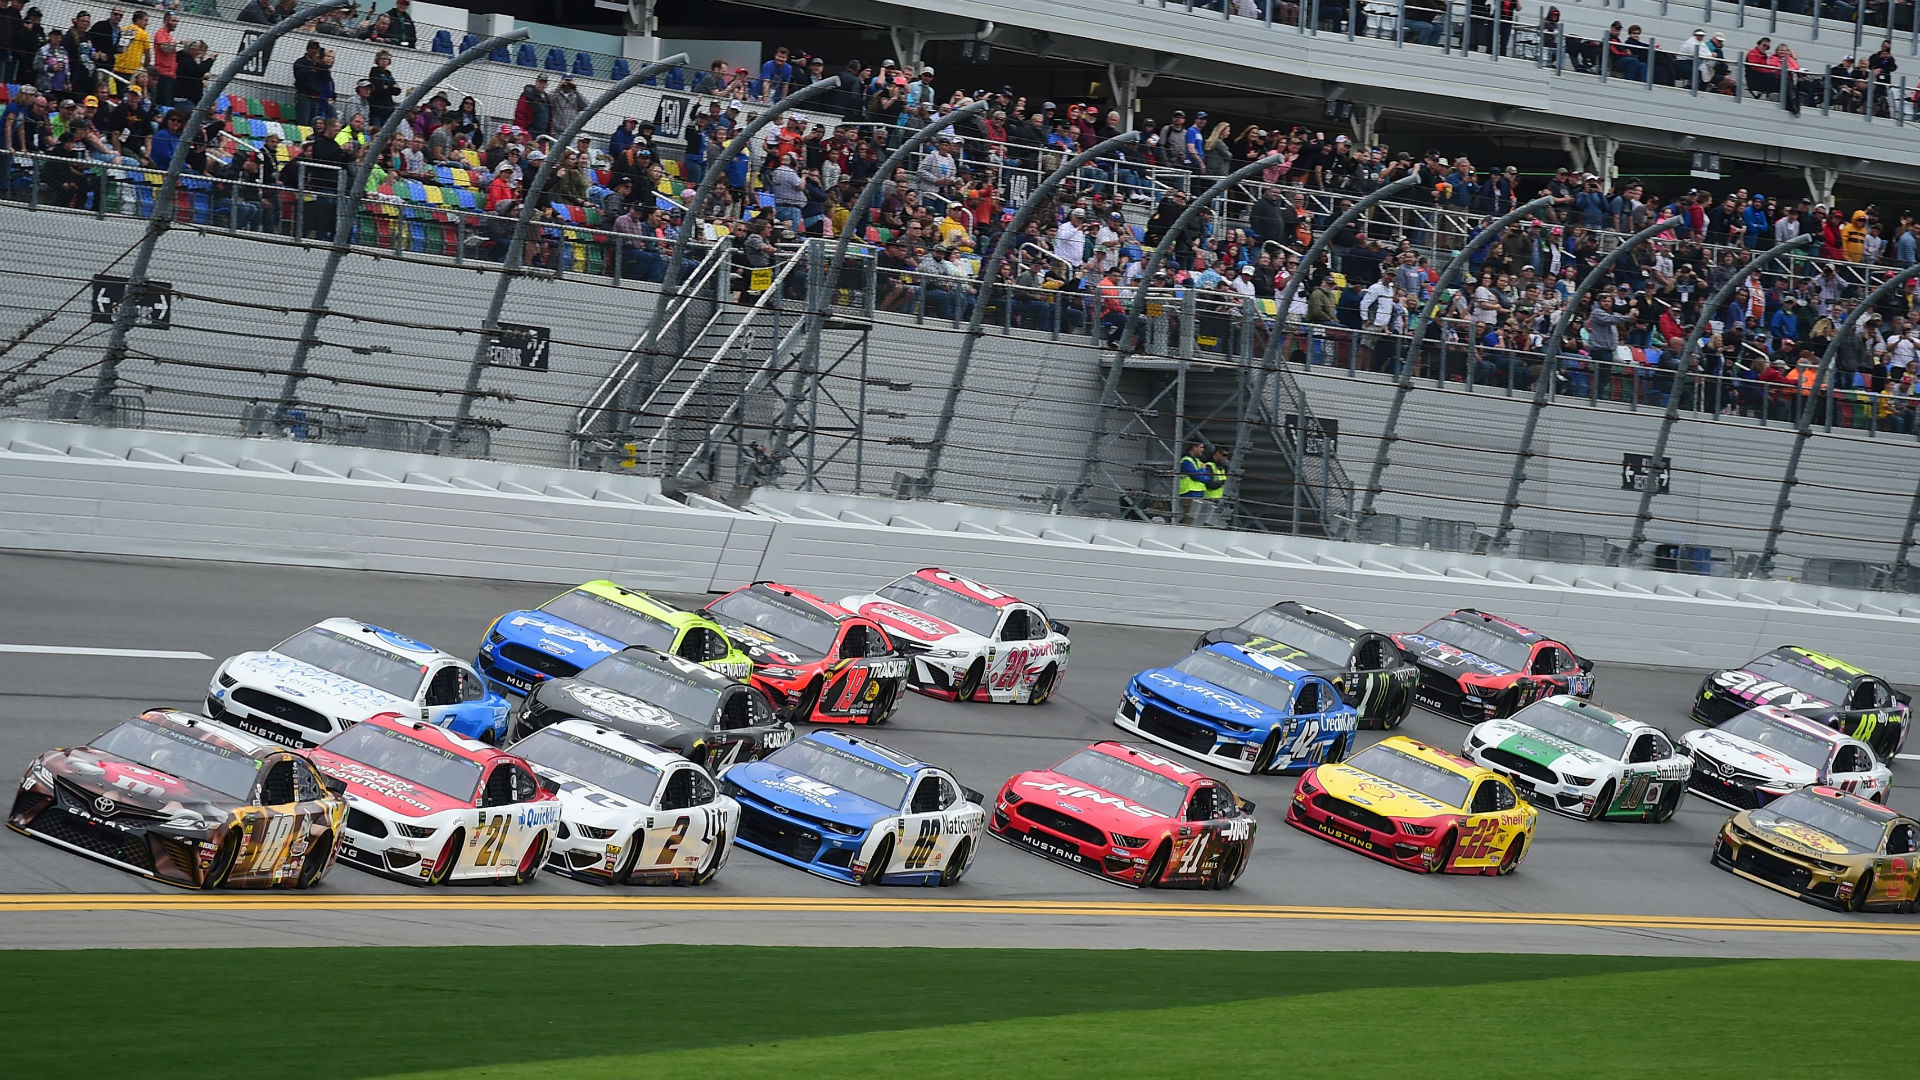 Watch NASCAR Race Online, On TV